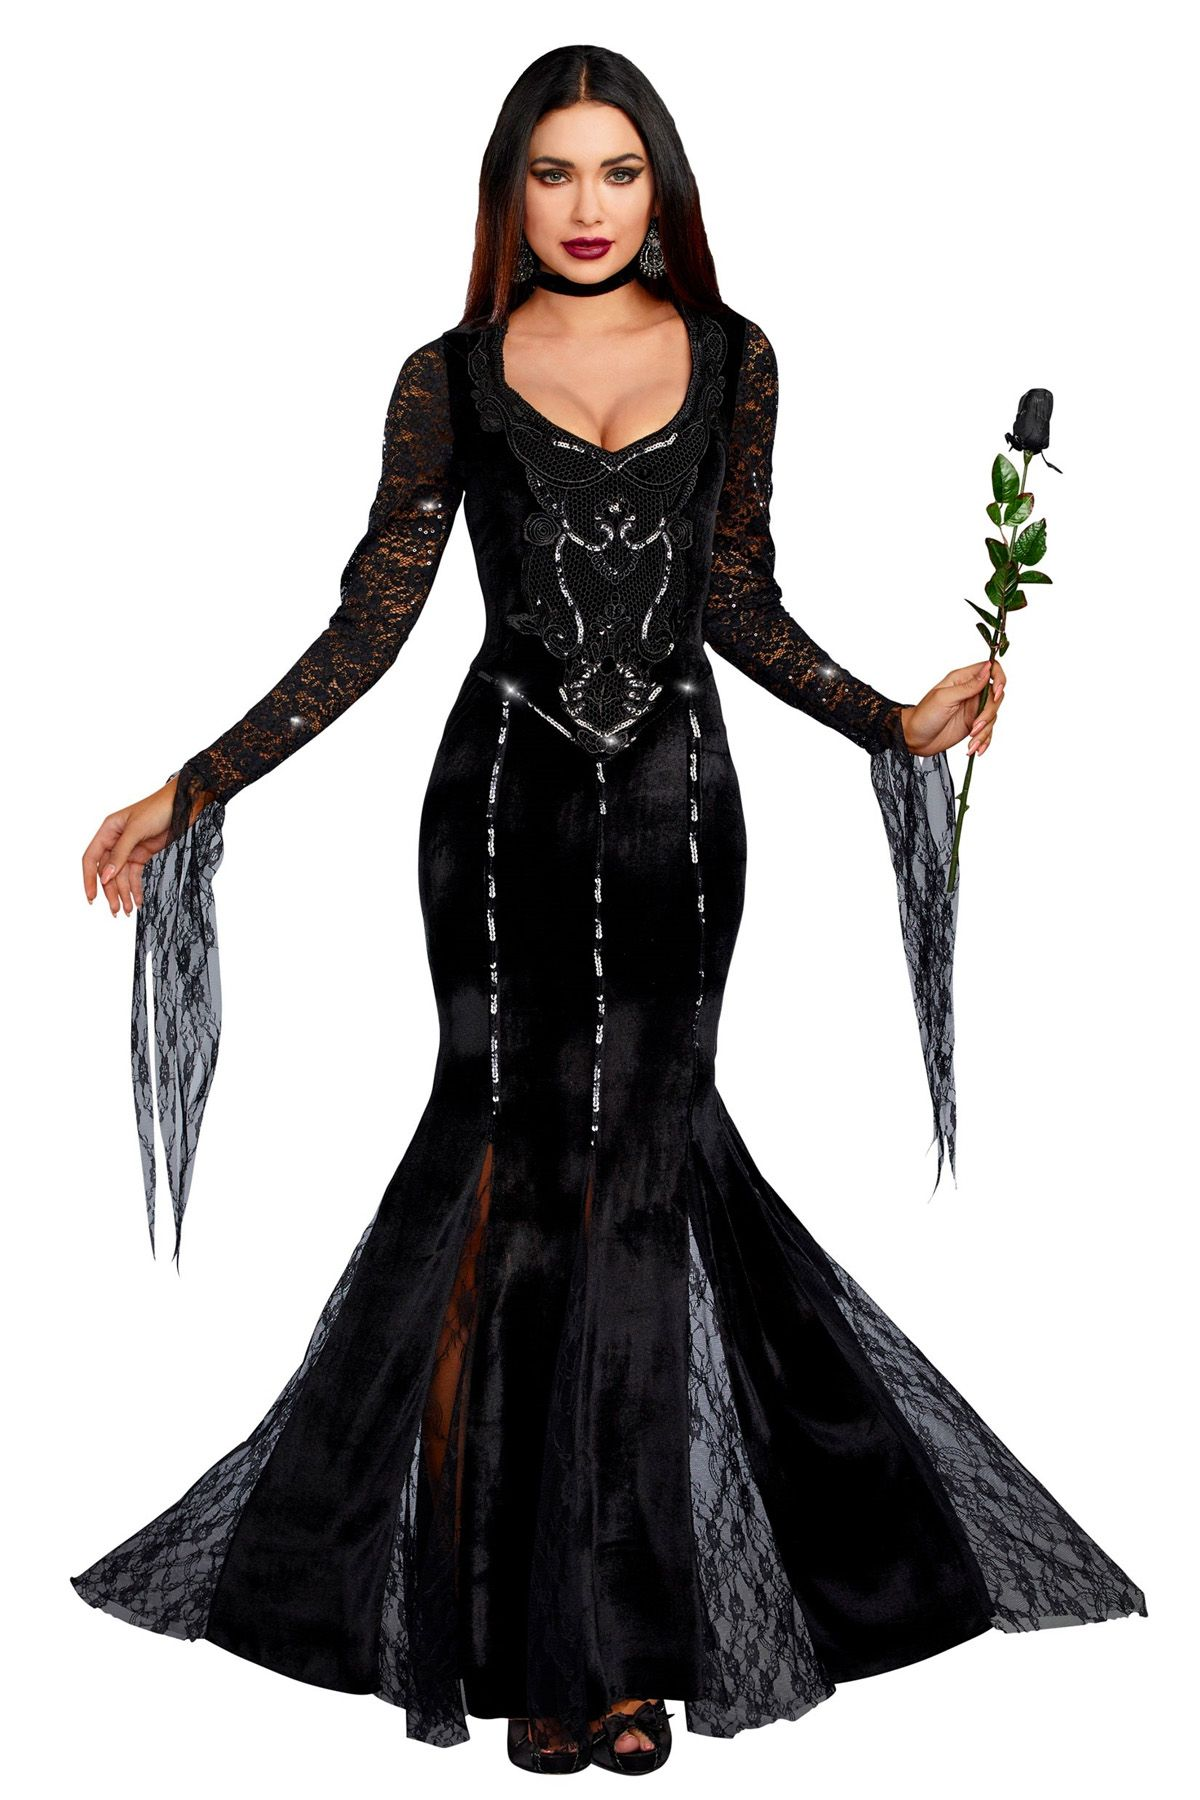 25 Scary Halloween Costume Ideas - Scariest Costumes for Women   Men 7912d89393